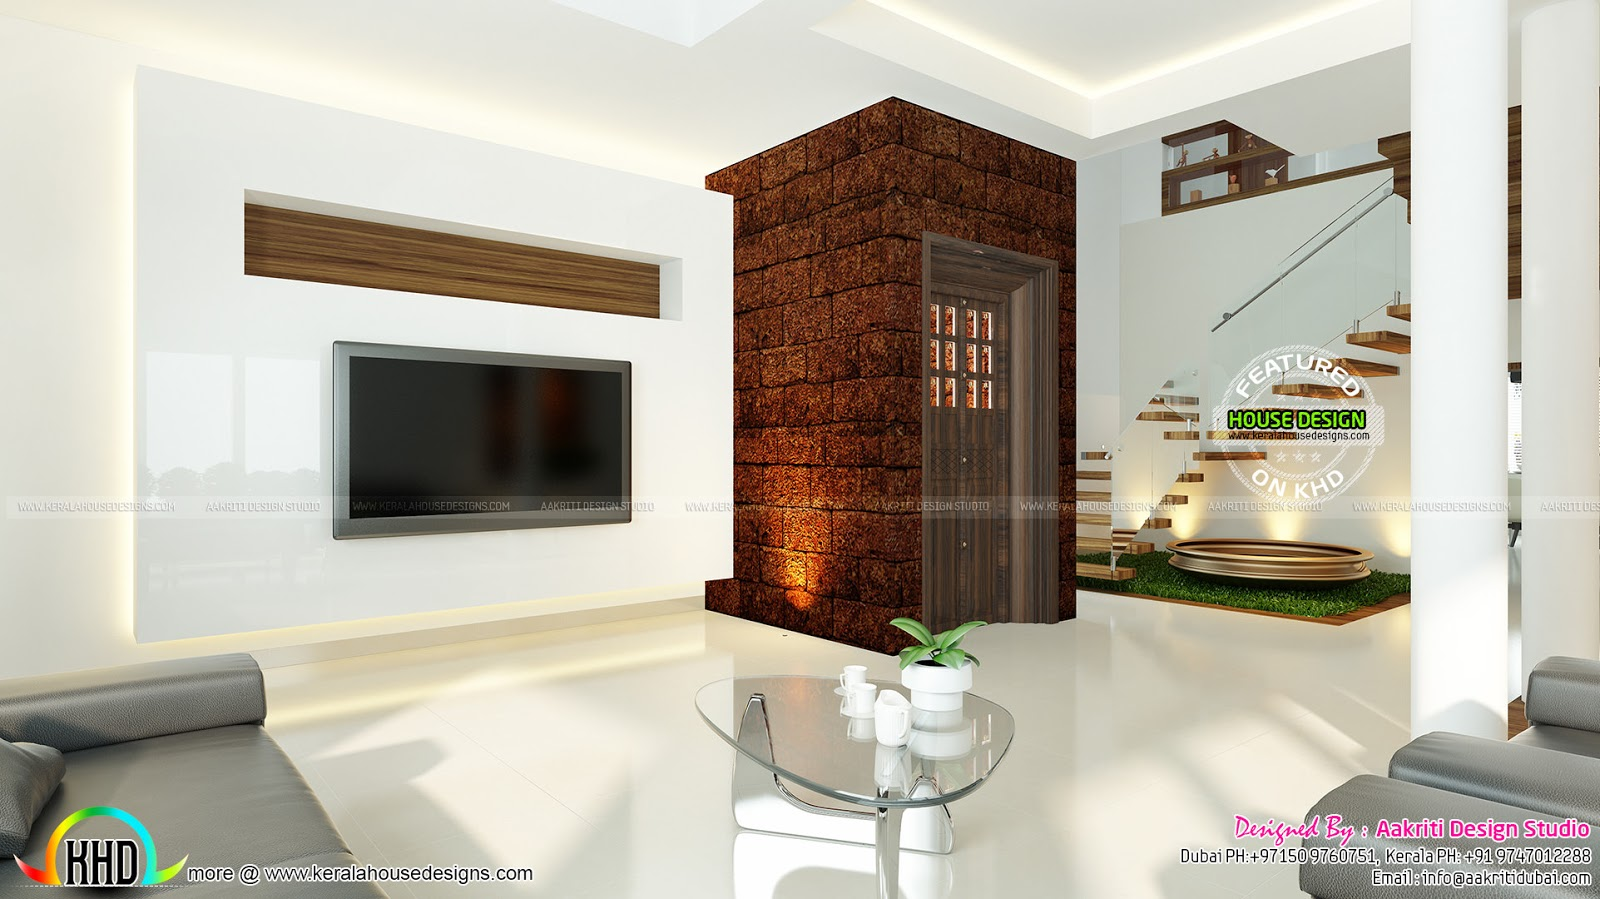 kitchen designs on a budget stainless steel farmhouse sink modern interior - kerala home design and floor plans